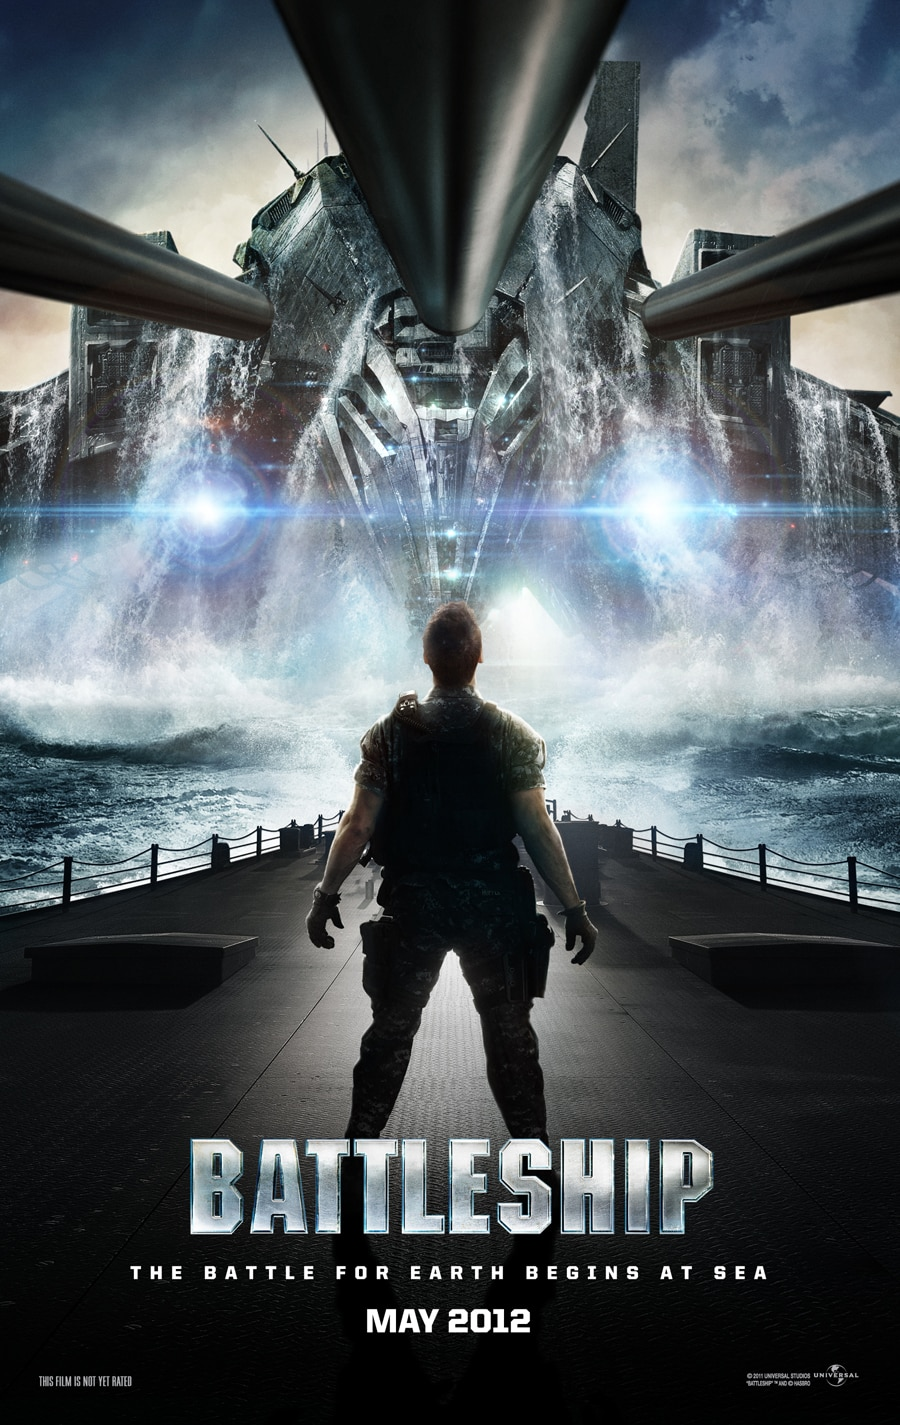 Battleship Video Interview Series Part 2 - Rhianna and More